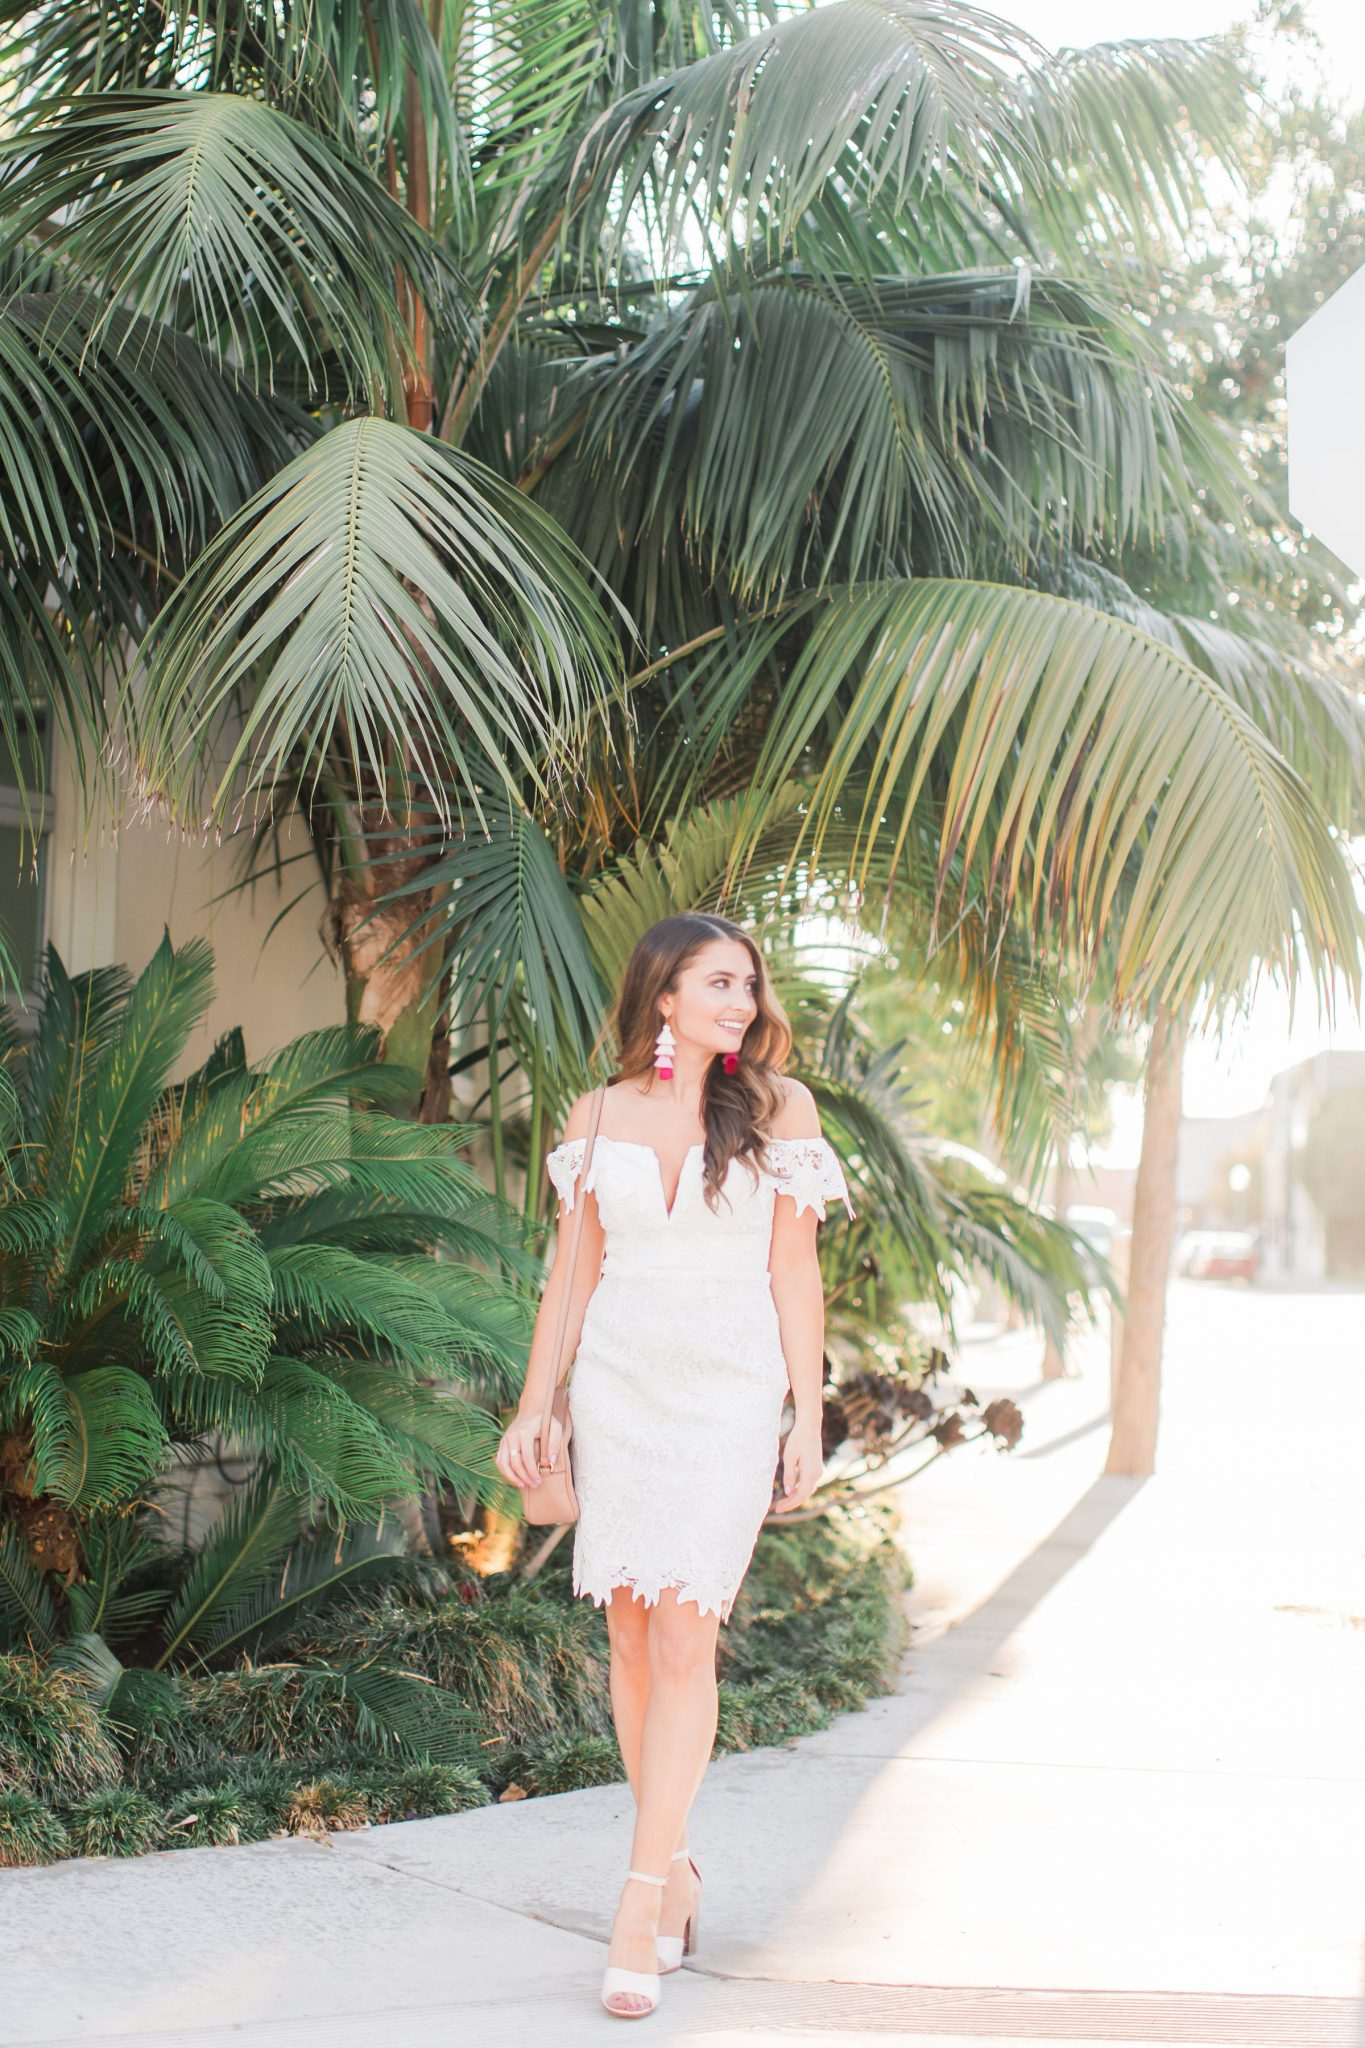 Maxie Elle | Bride-to-be Looks - Wedding Shower Outfit by popular Orange County fashion blogger Maxie Elle